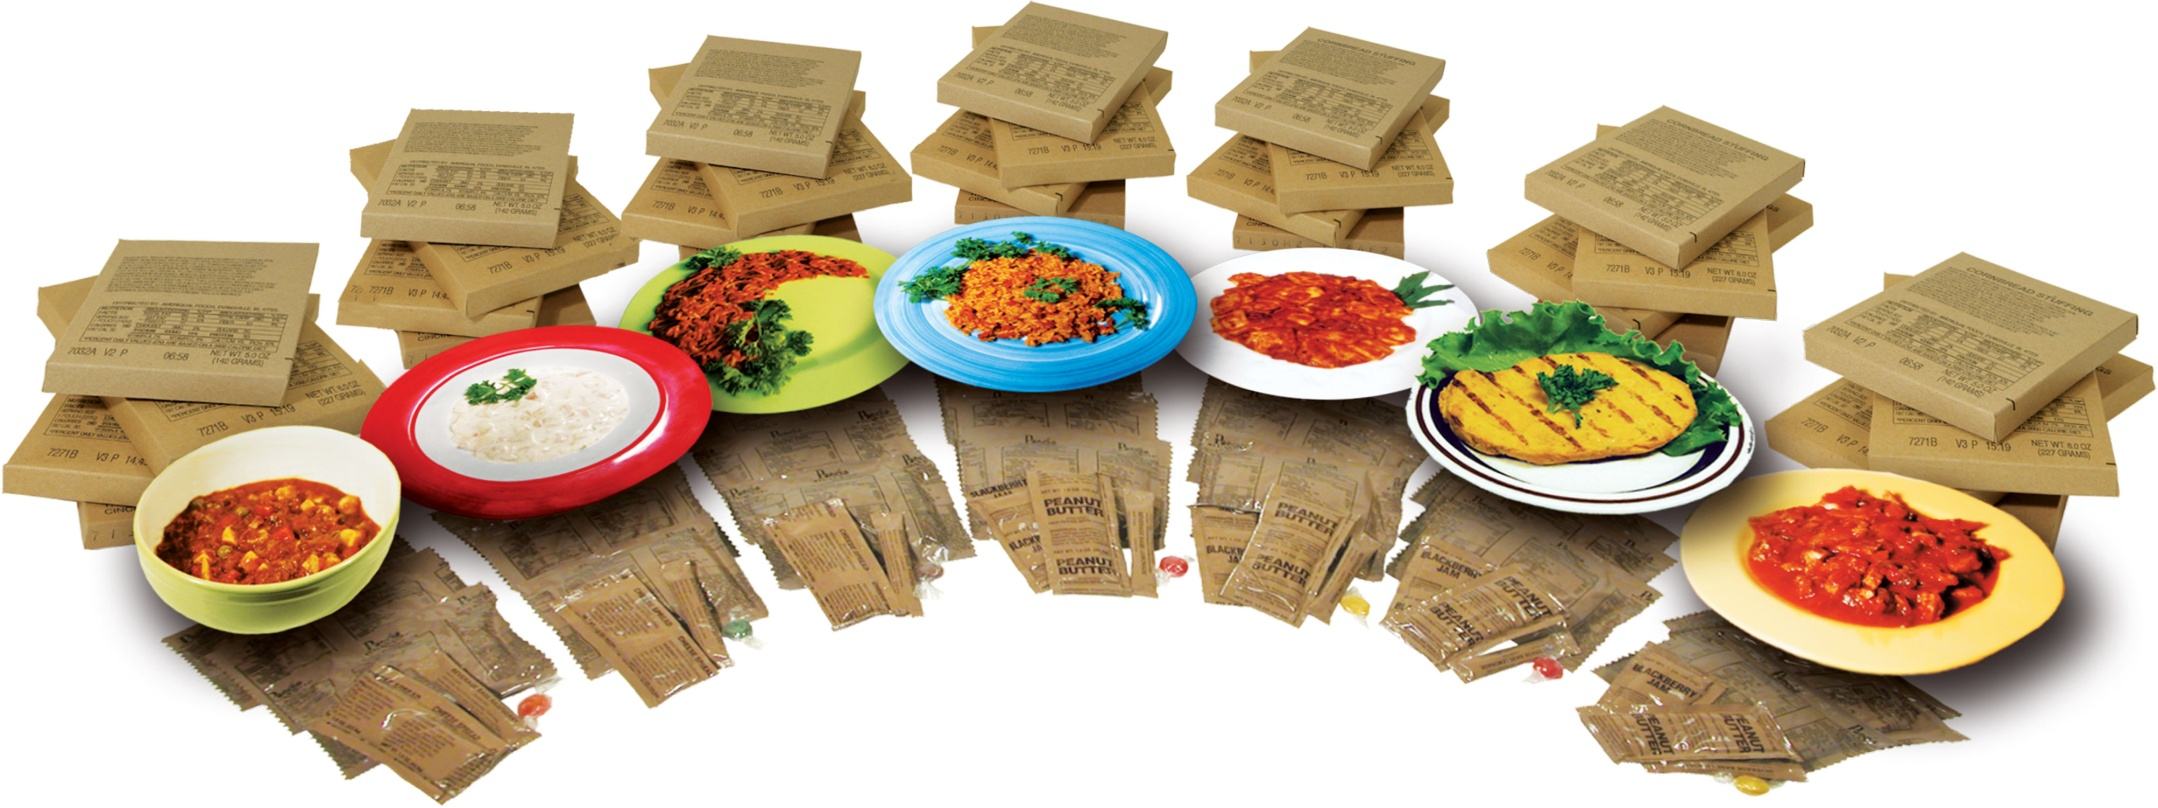 Ready to eat meals (MRE)